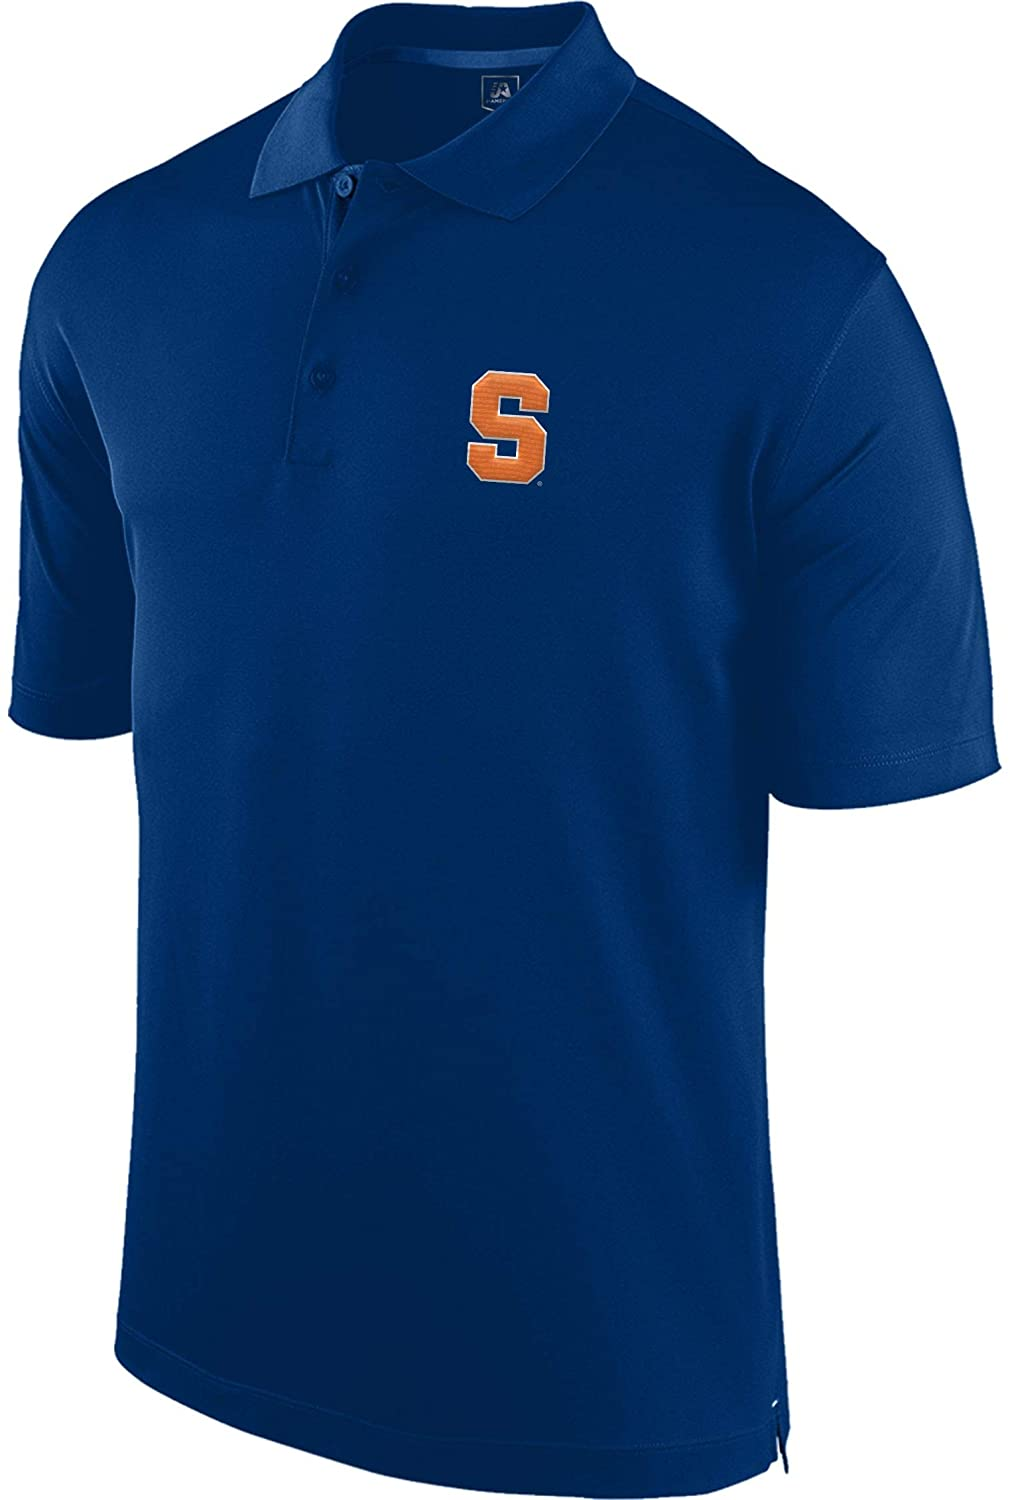 J.America Mens Syracuse Orangemen Performance Polyester Short Sleeve NCAA Stance Polo - Blue (Medium)